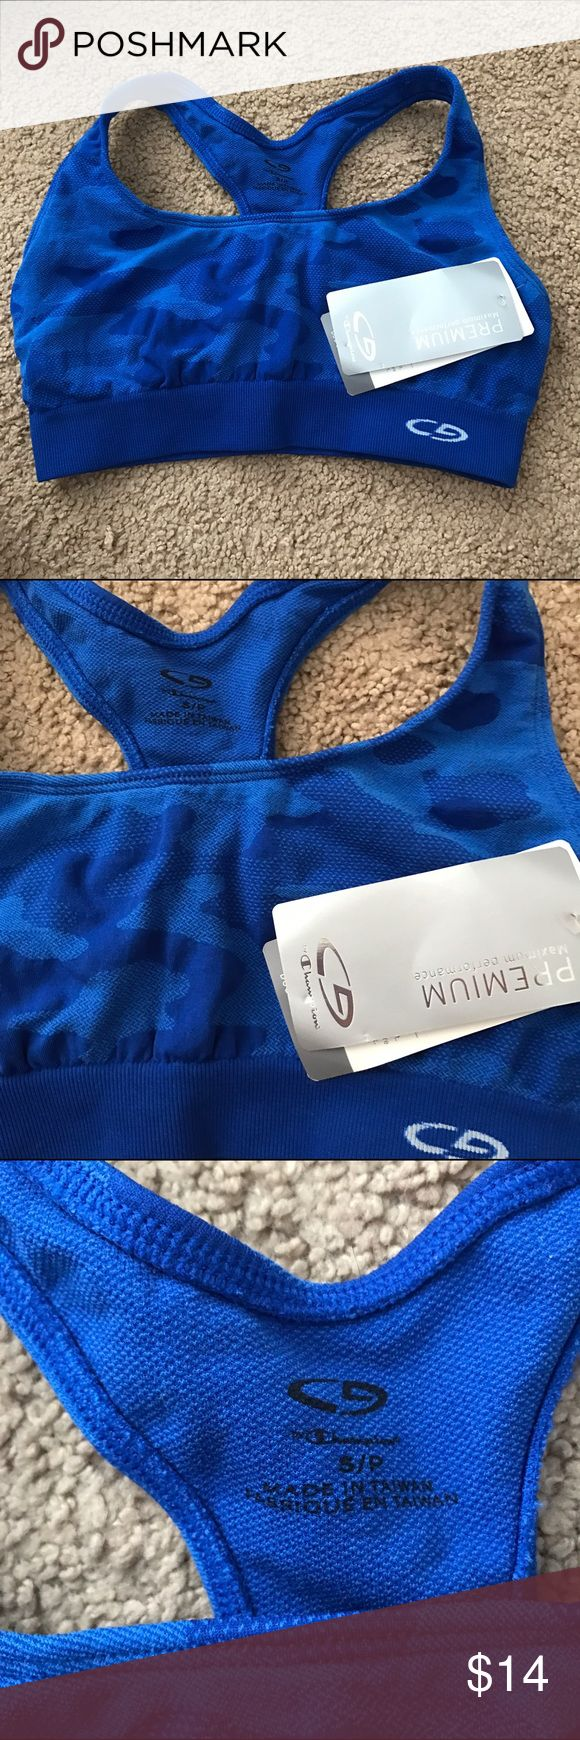 Small NWT champion sports bra Super cute and new. Almost an army print to it but in a cobalt blue. Stretchy material Champion Intimates & Sleepwear Bras